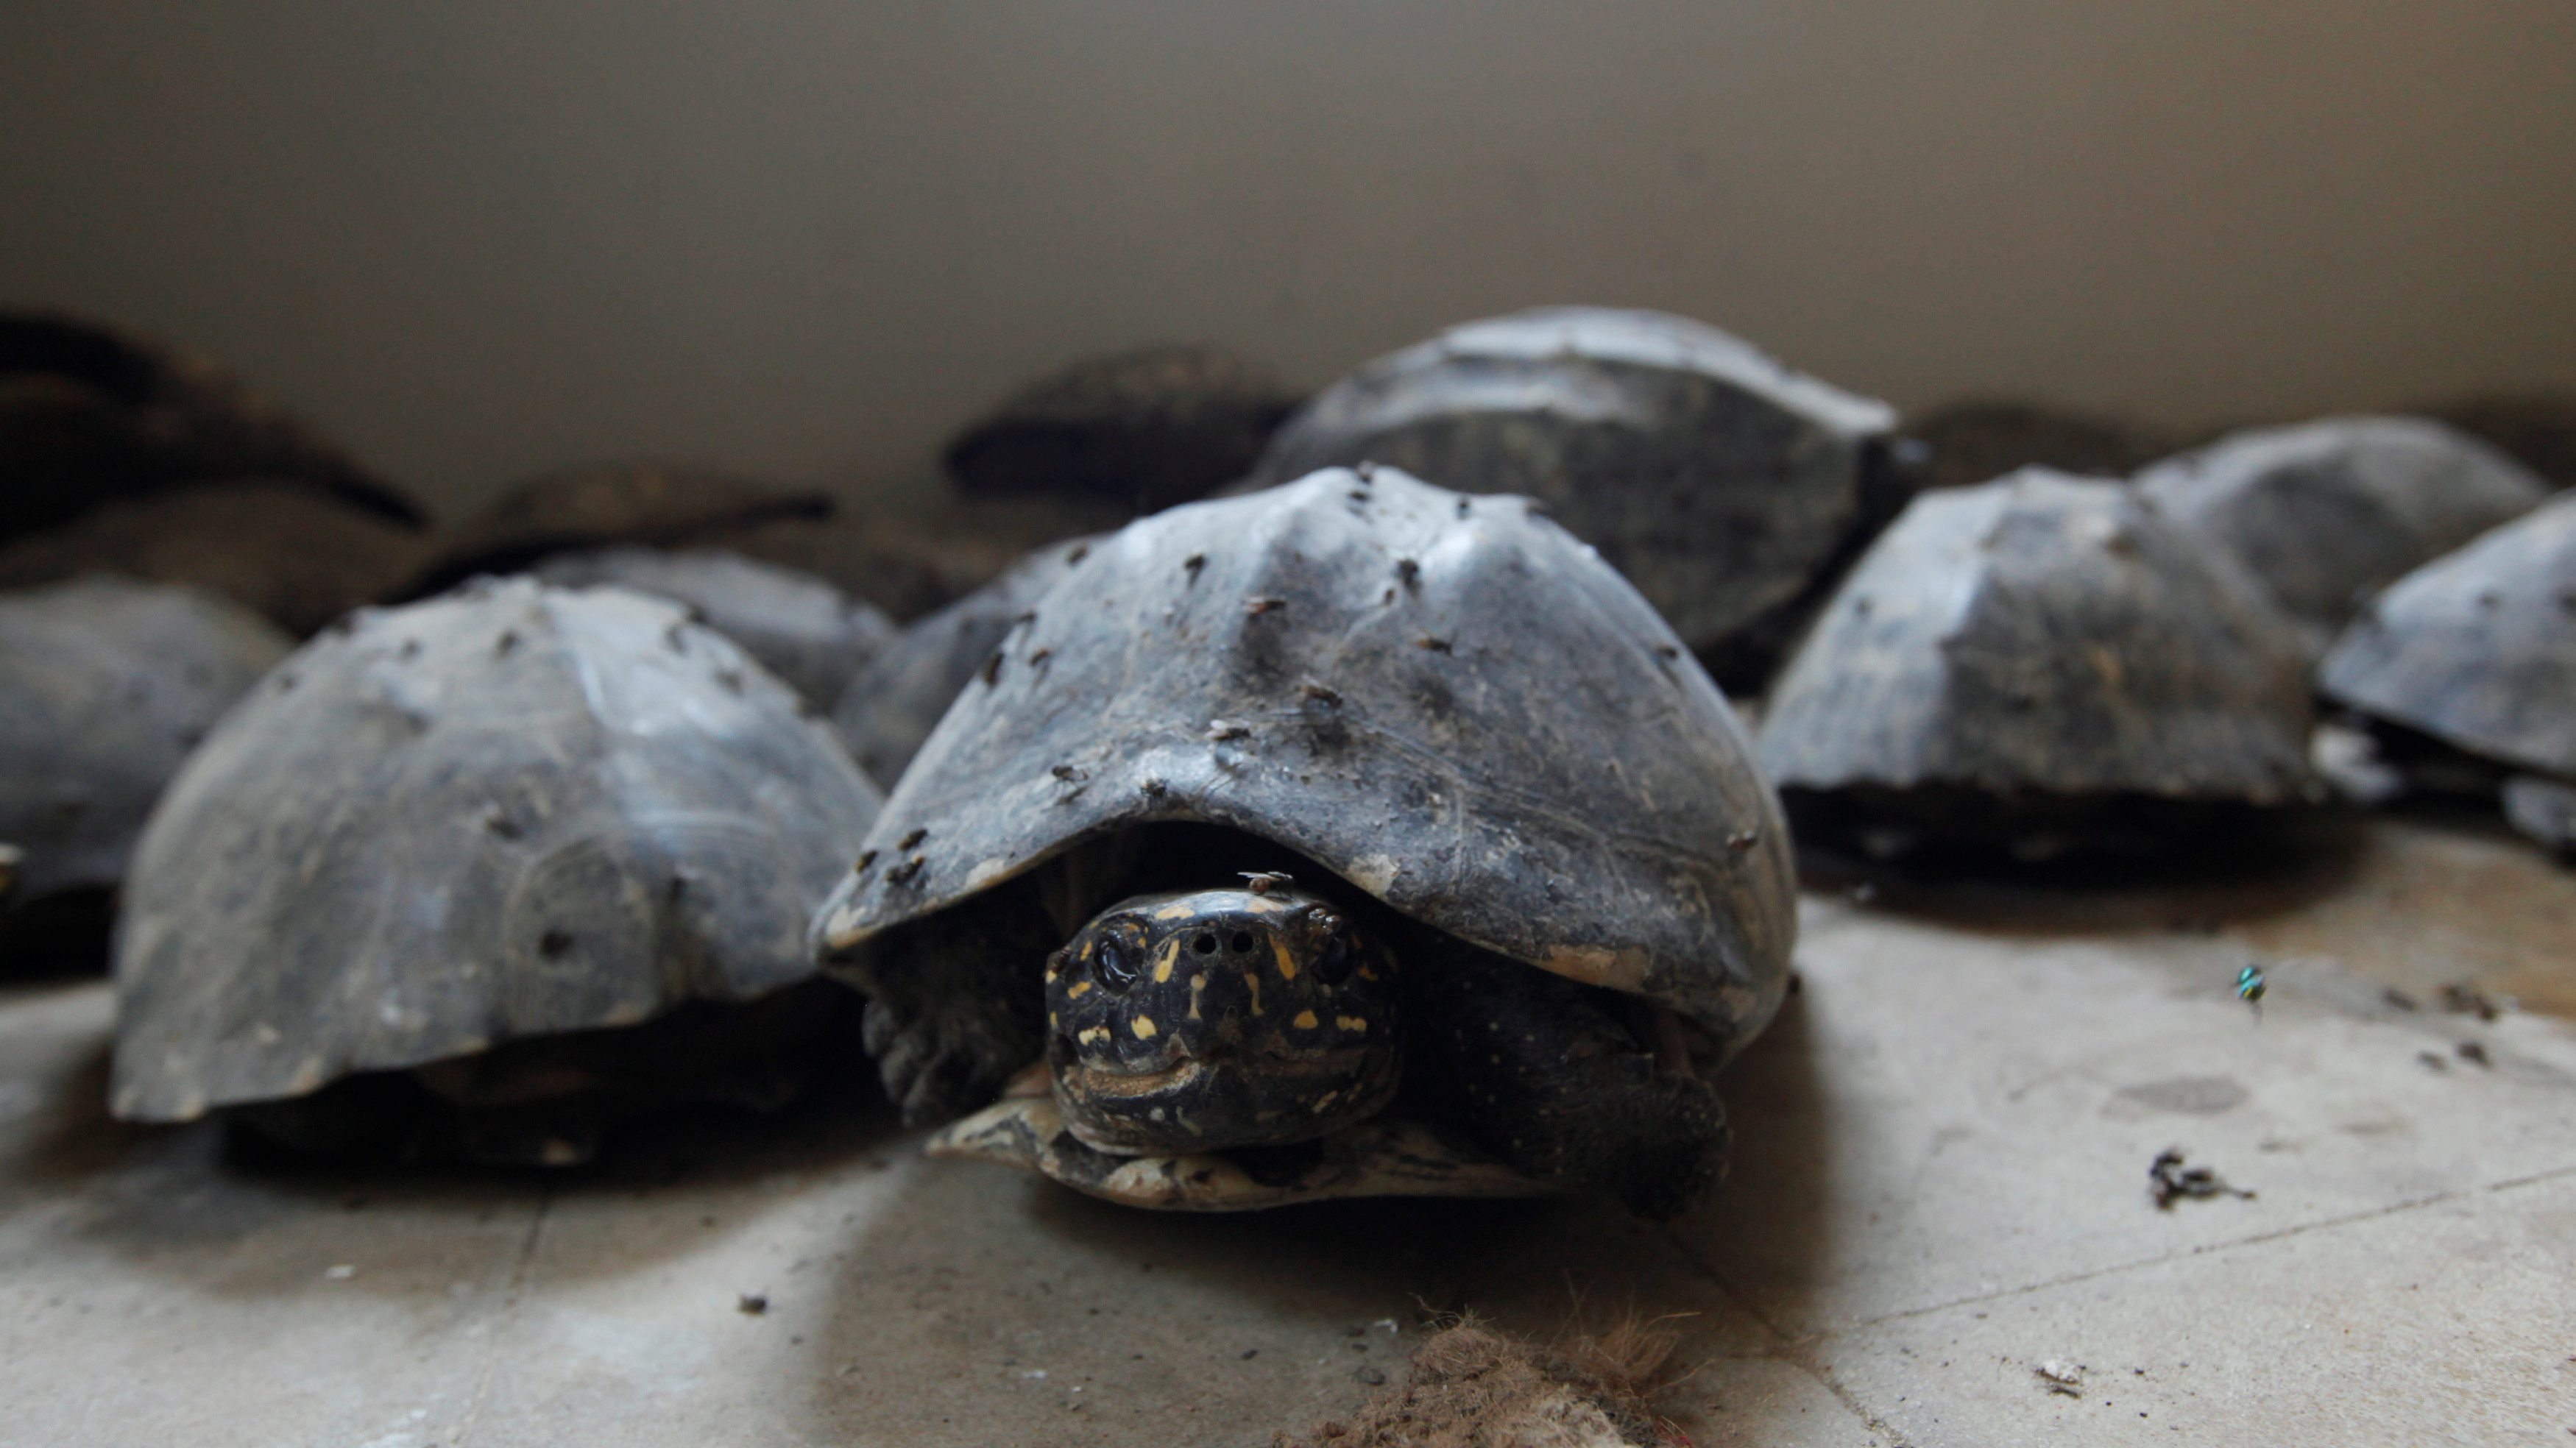 Black spotted freshwater turtles are pictured after they were seized in a raid, at Sindh Wildlife Department in Karachi, Pakistan, April 28, 2016.